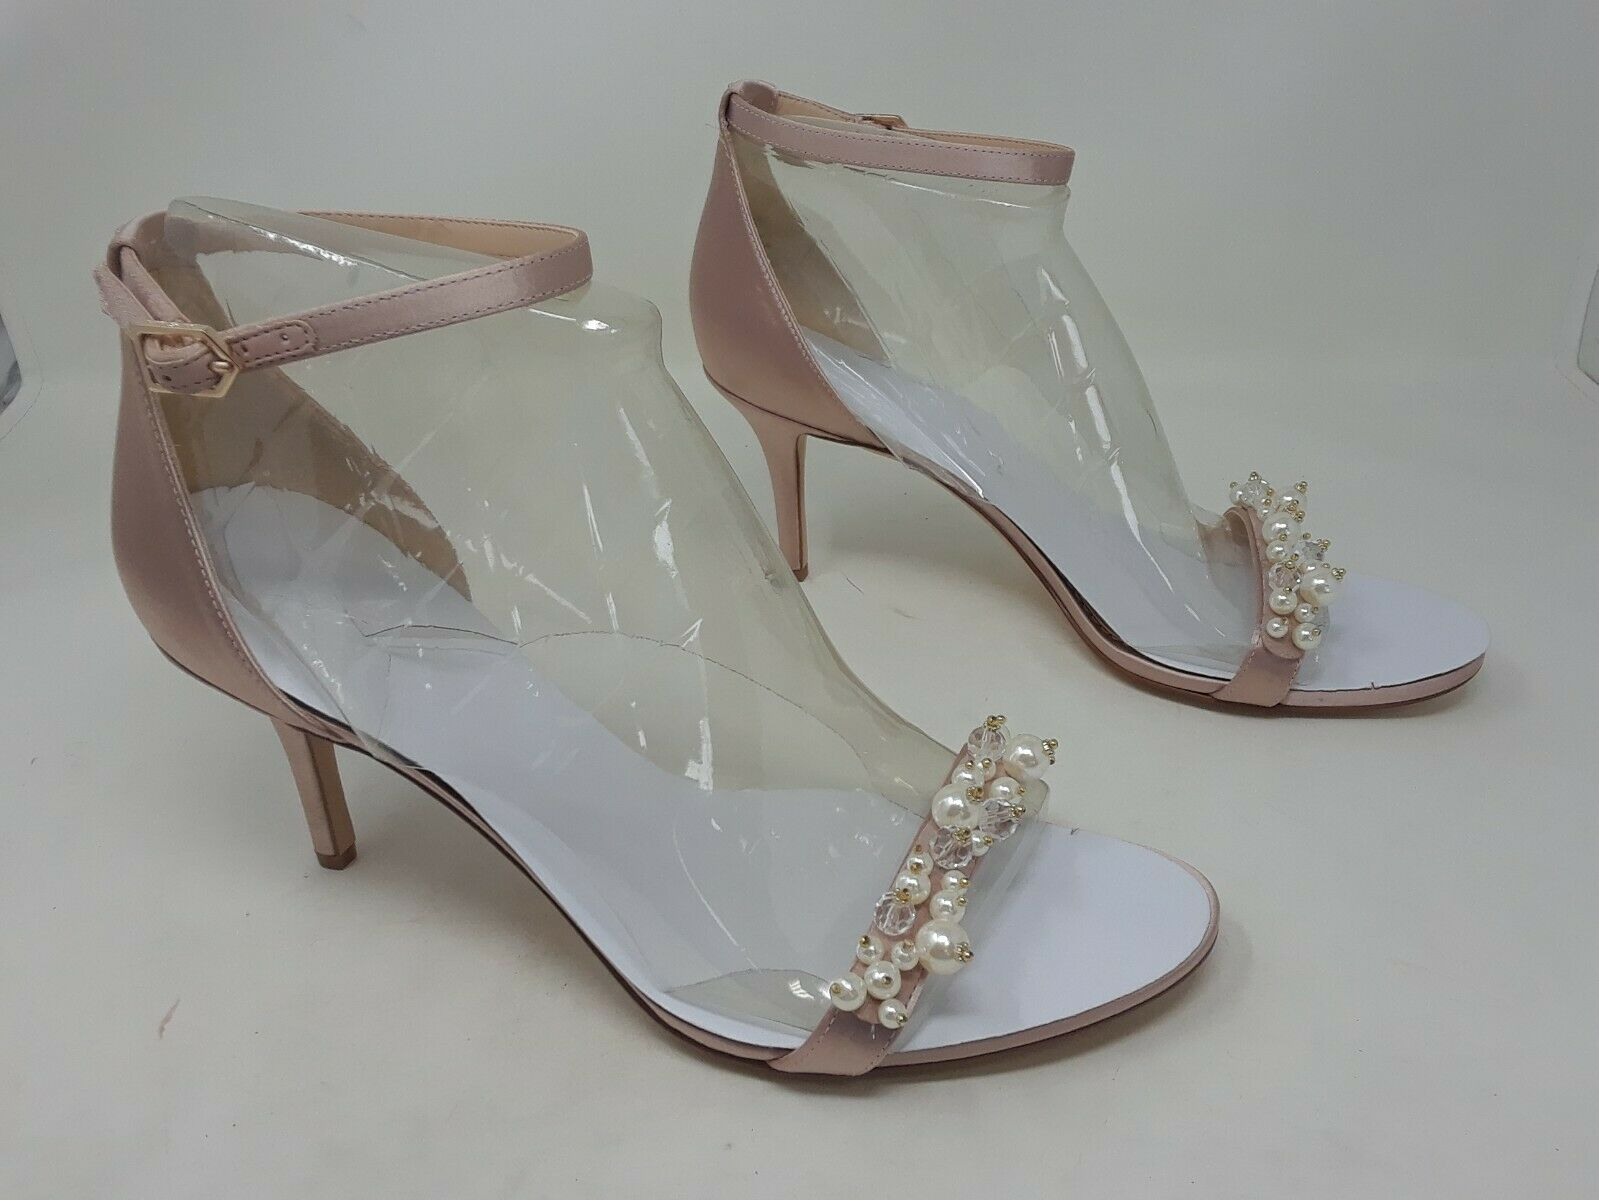 New   Women's Sam Edelman Platt Embellished Satin Sandals F7863F1650 size 11 Z11